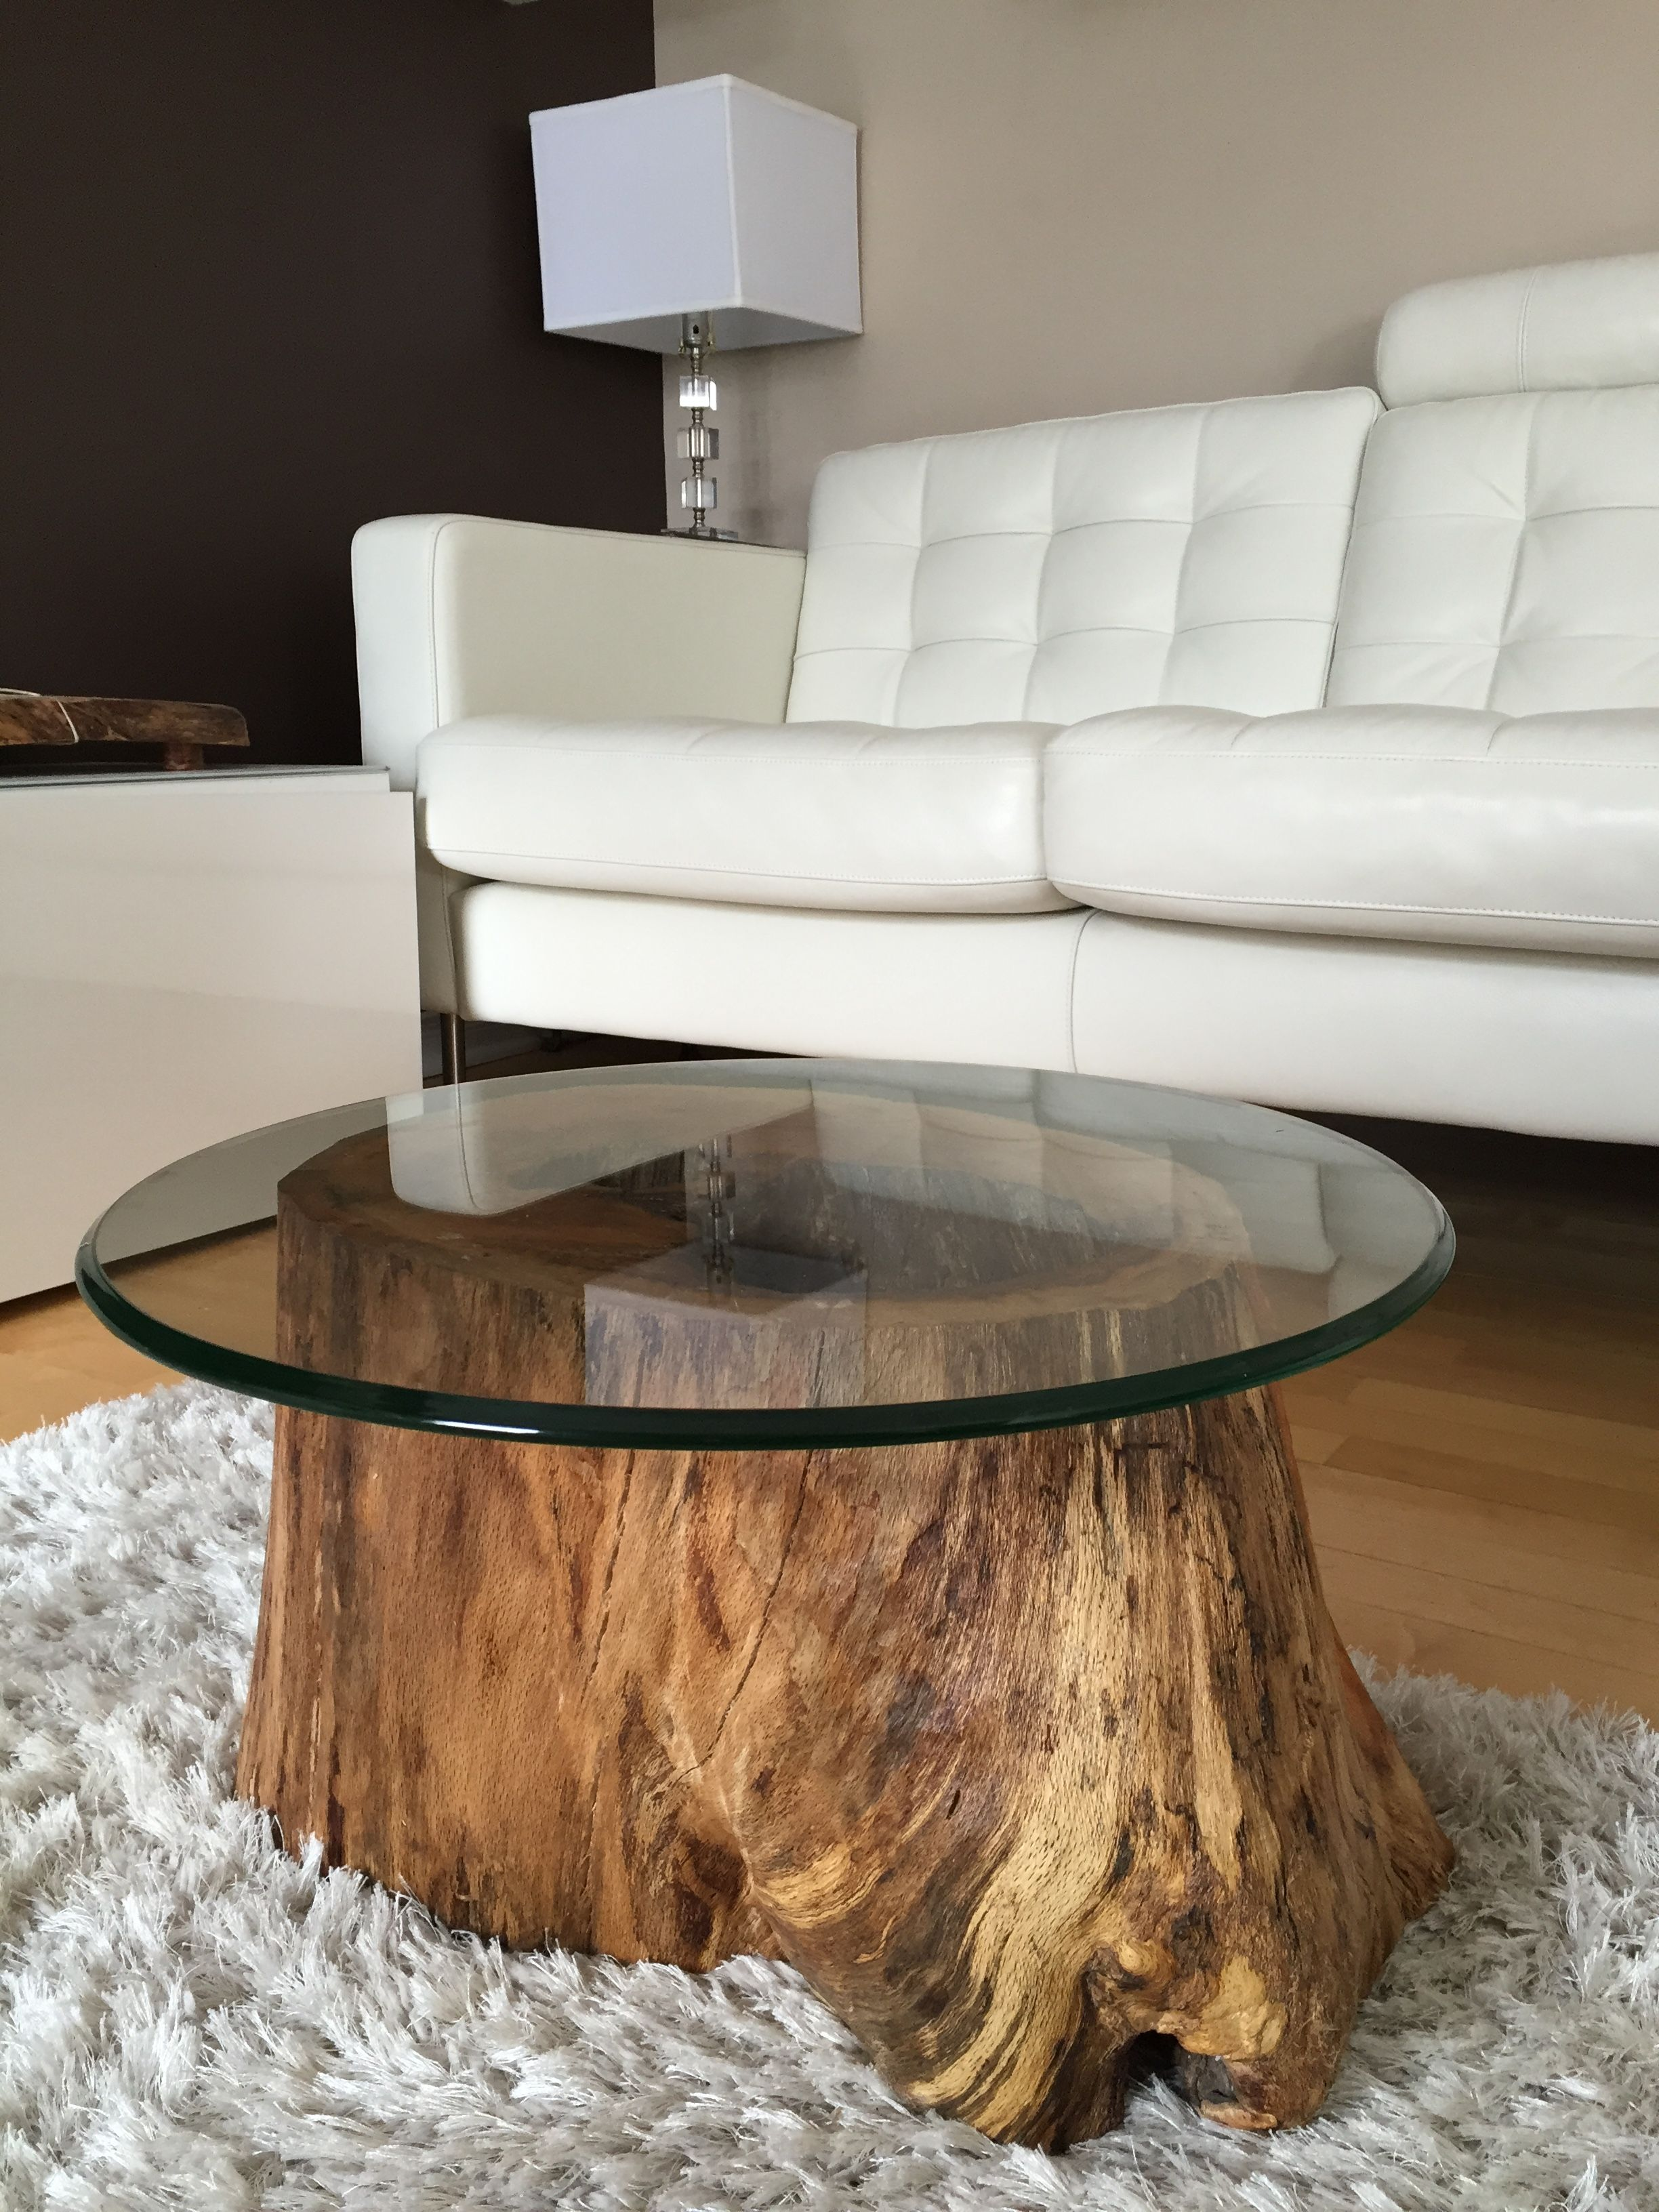 coffee tables furniture modern rustic log wood accent table home goods website farm dining set for entryway tan leather chair circle compact office desk console with drawers fire